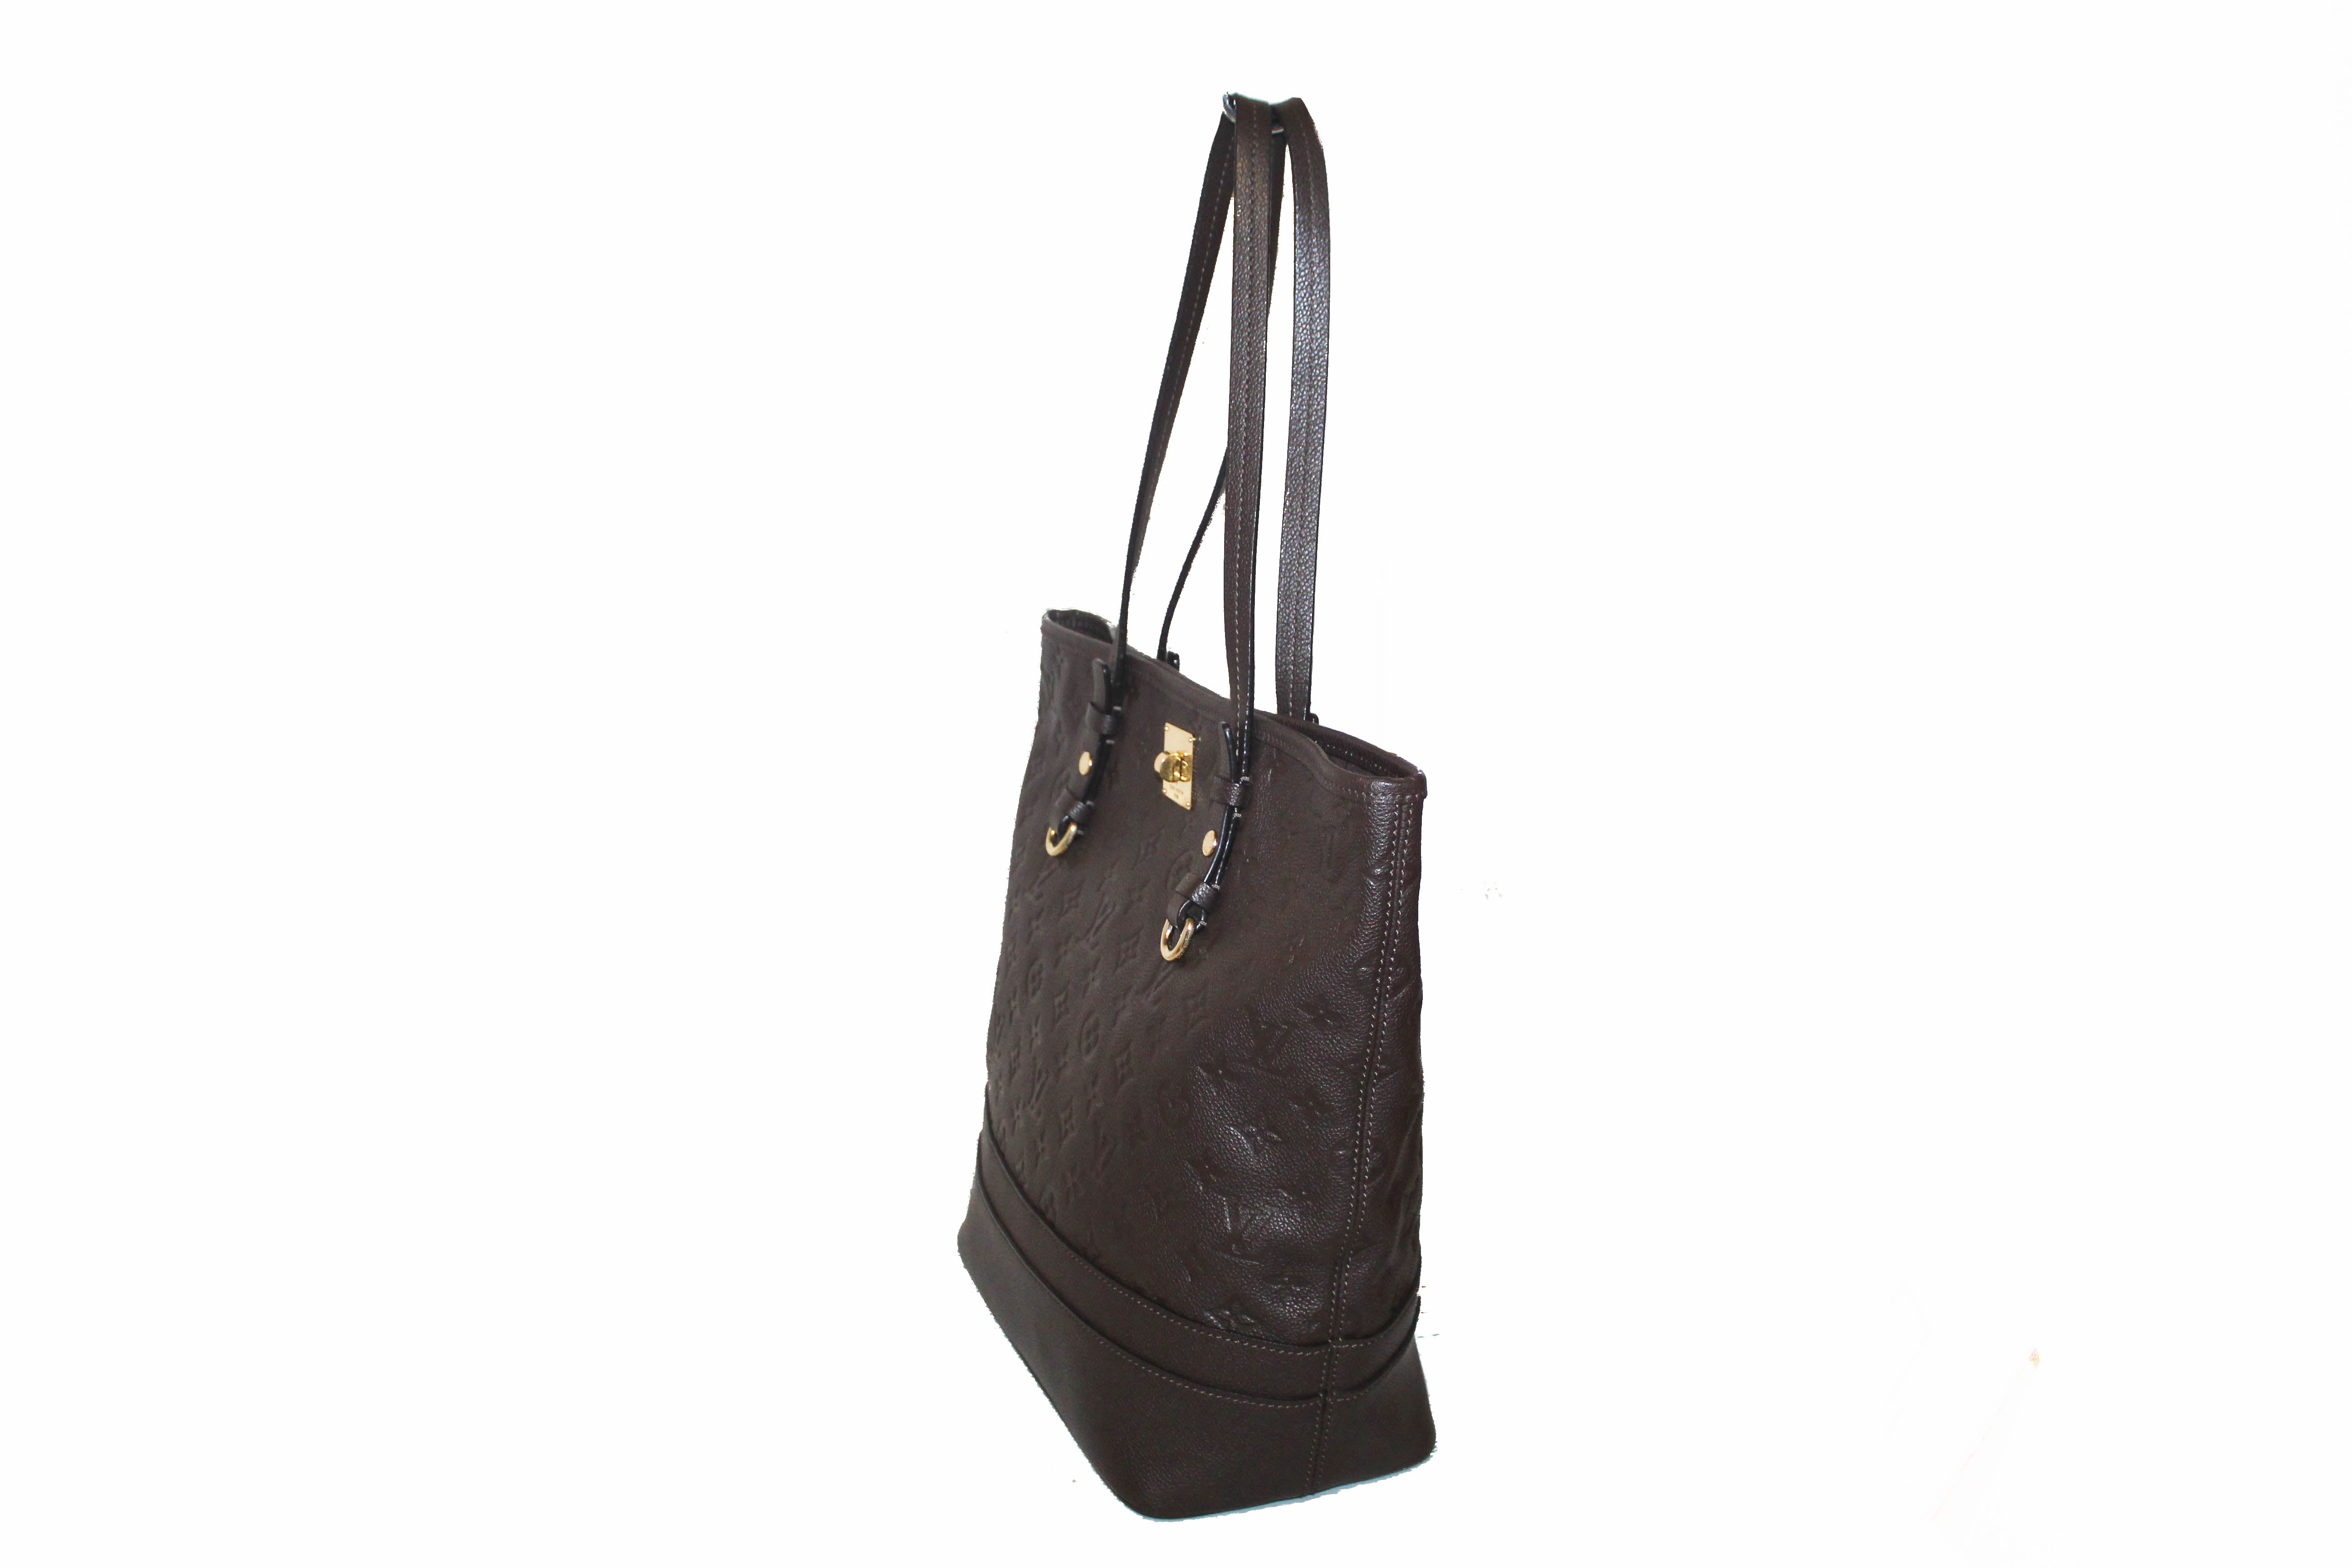 Authentic Louis Vuitton Ombre Empreinte Citadine PM Shoulder Tote